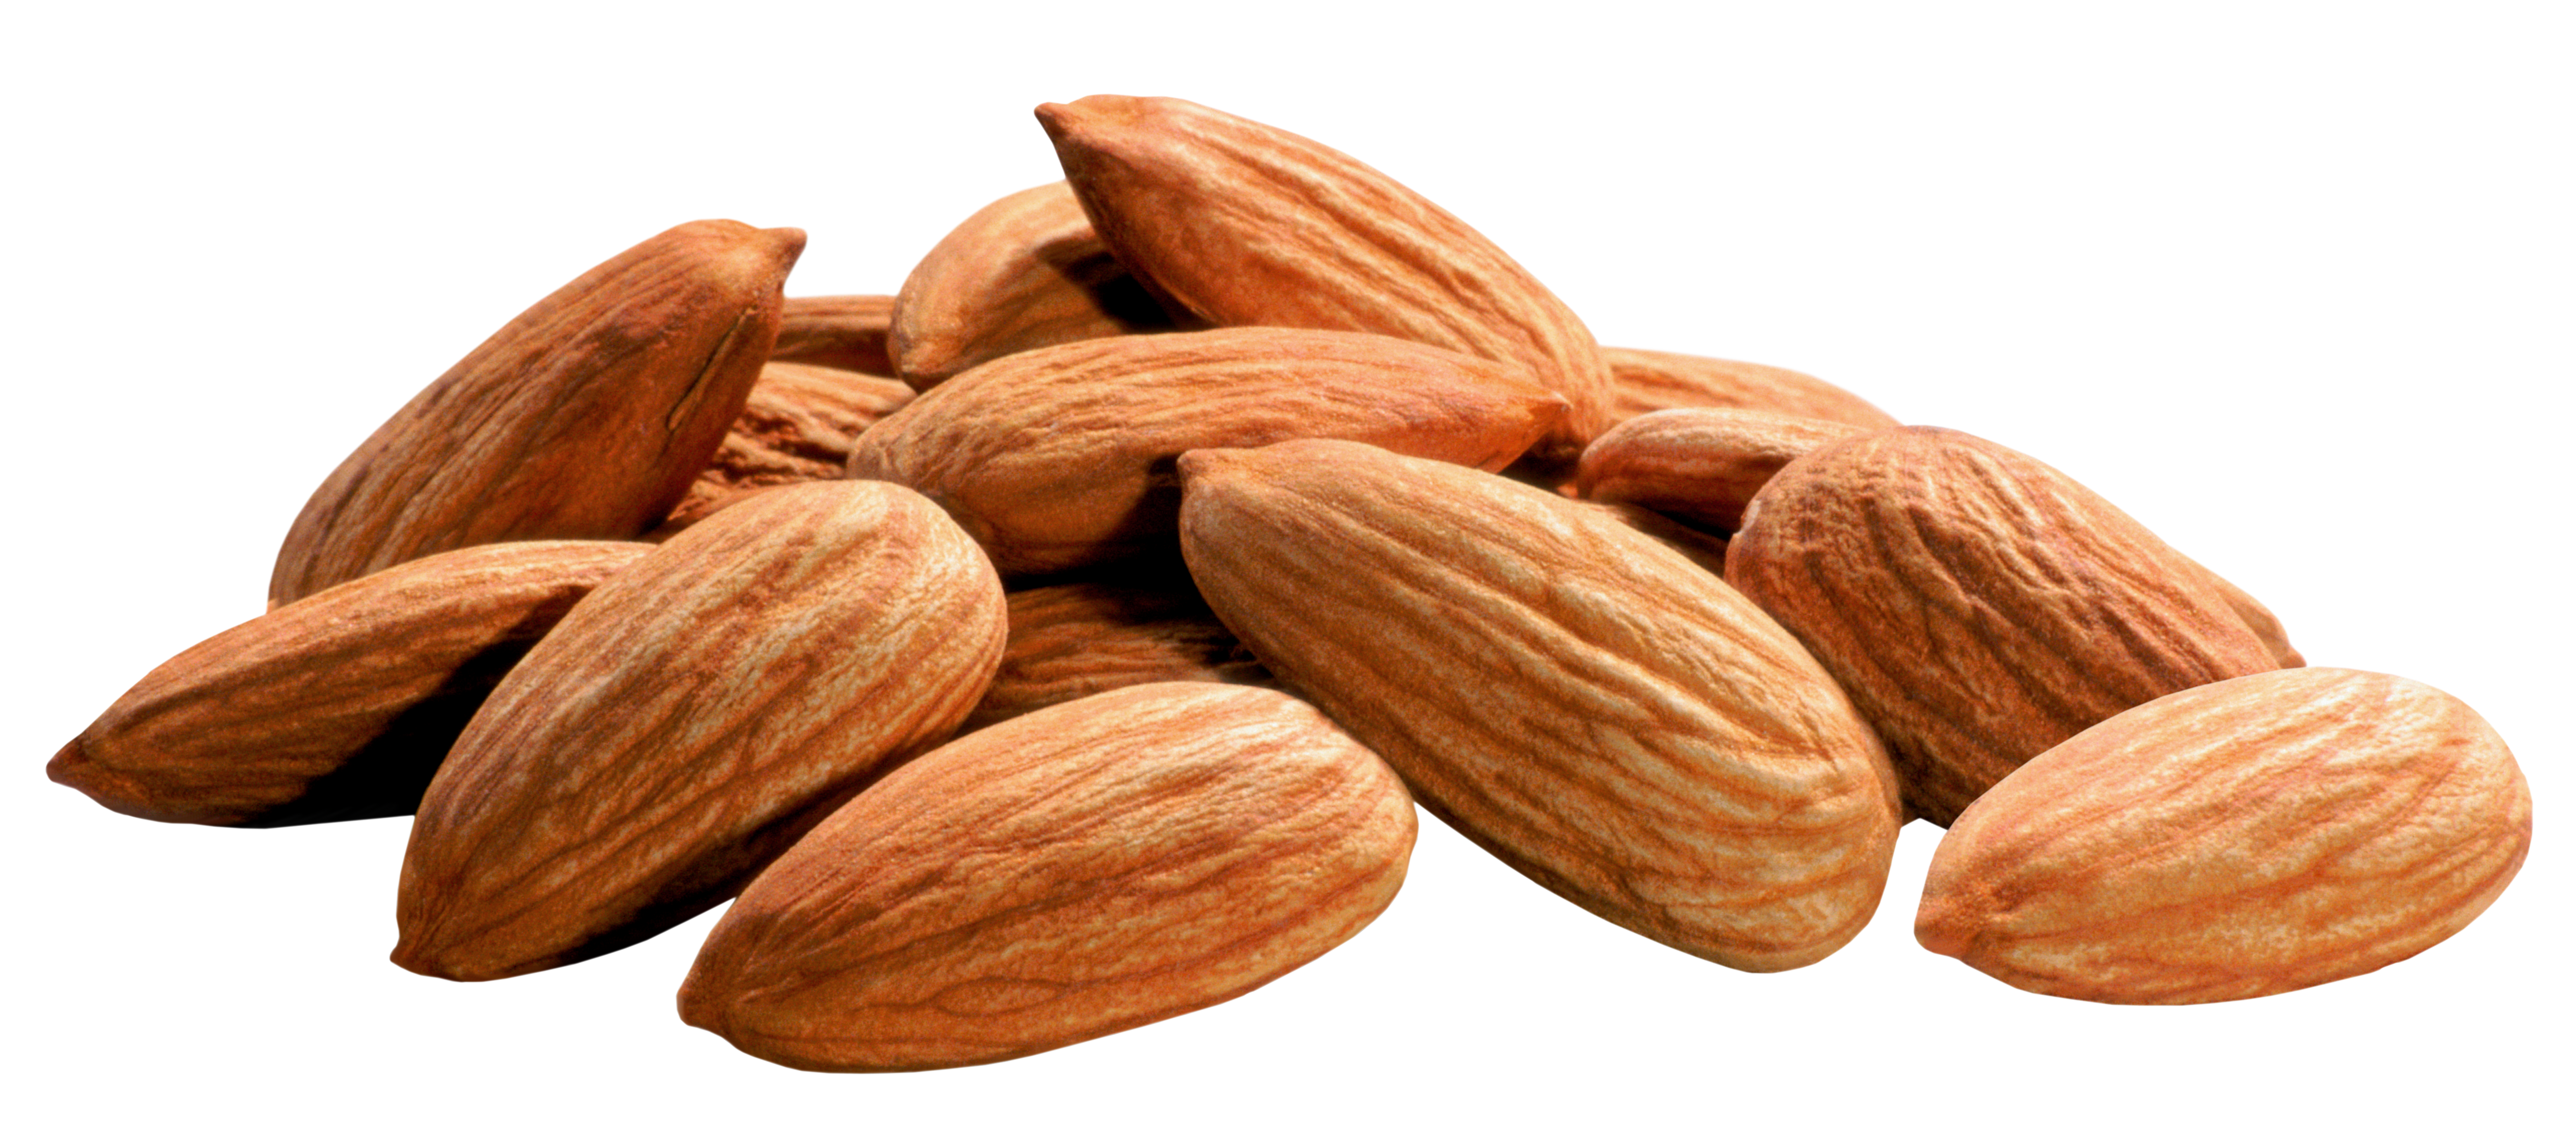 Almondt clipart transparent Almonds PNG Image | Gallery Yopriceville - High-Quality Images and ... transparent